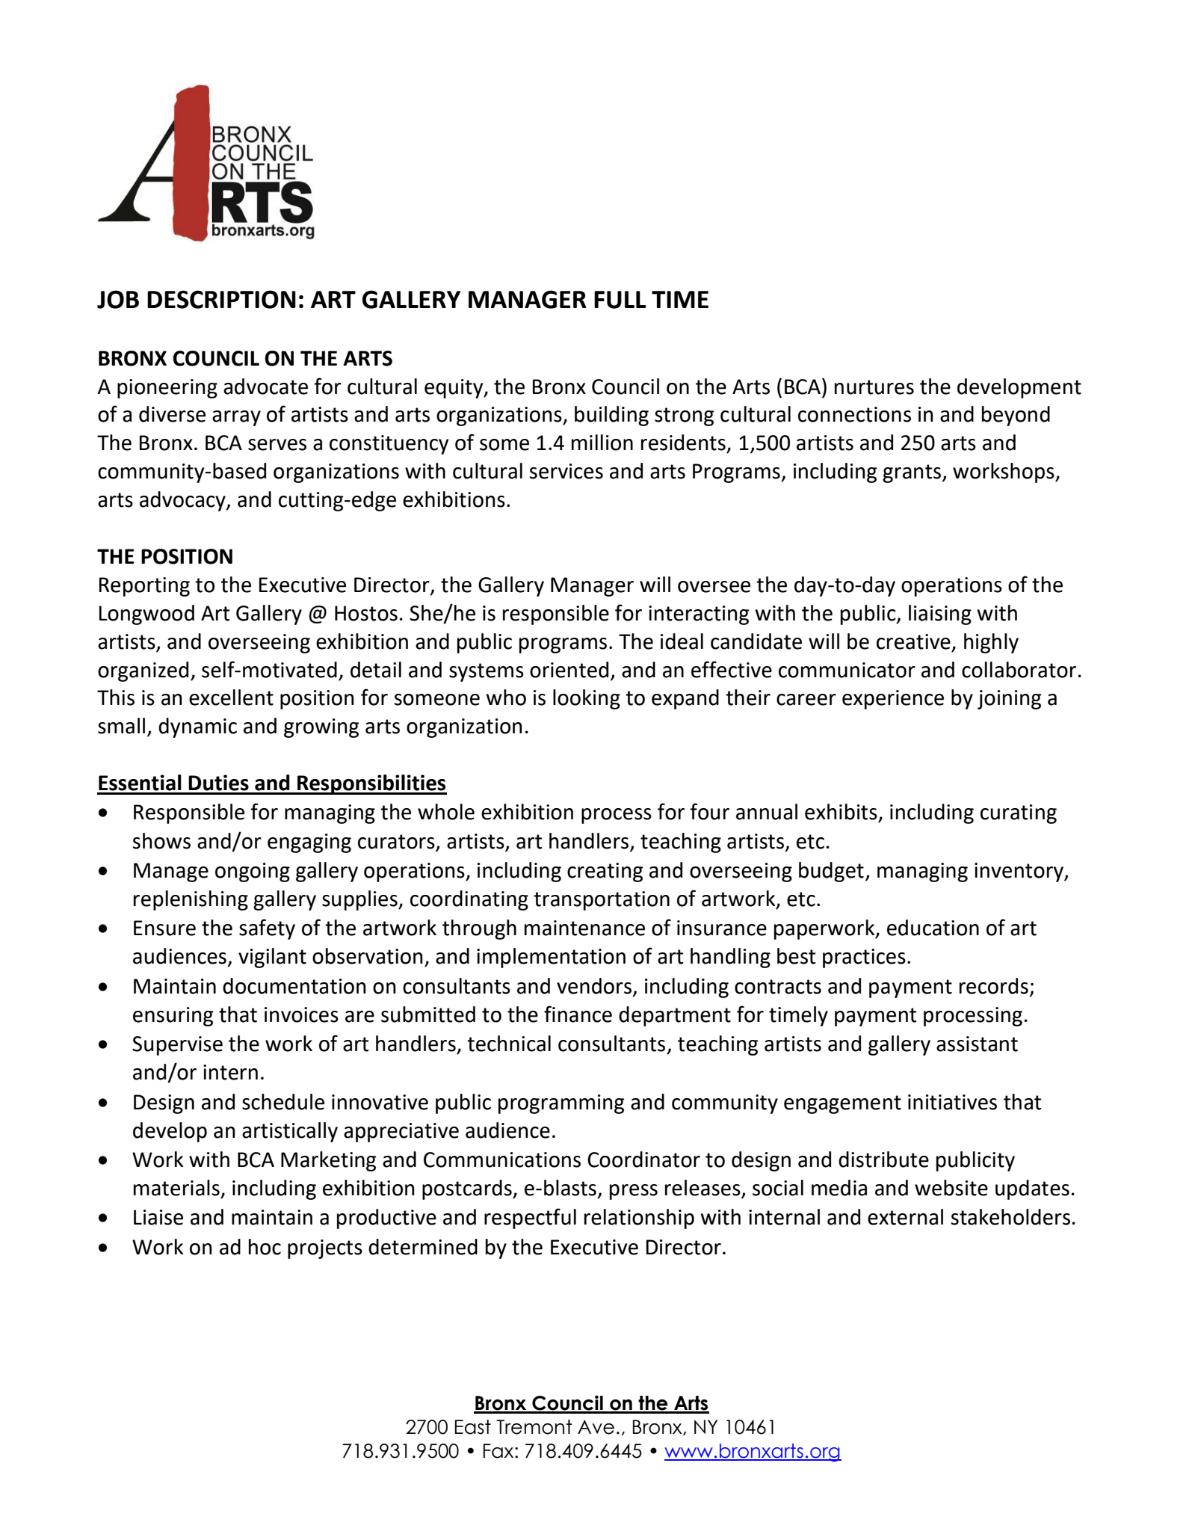 Looking To Hire An Art Gallery Manager